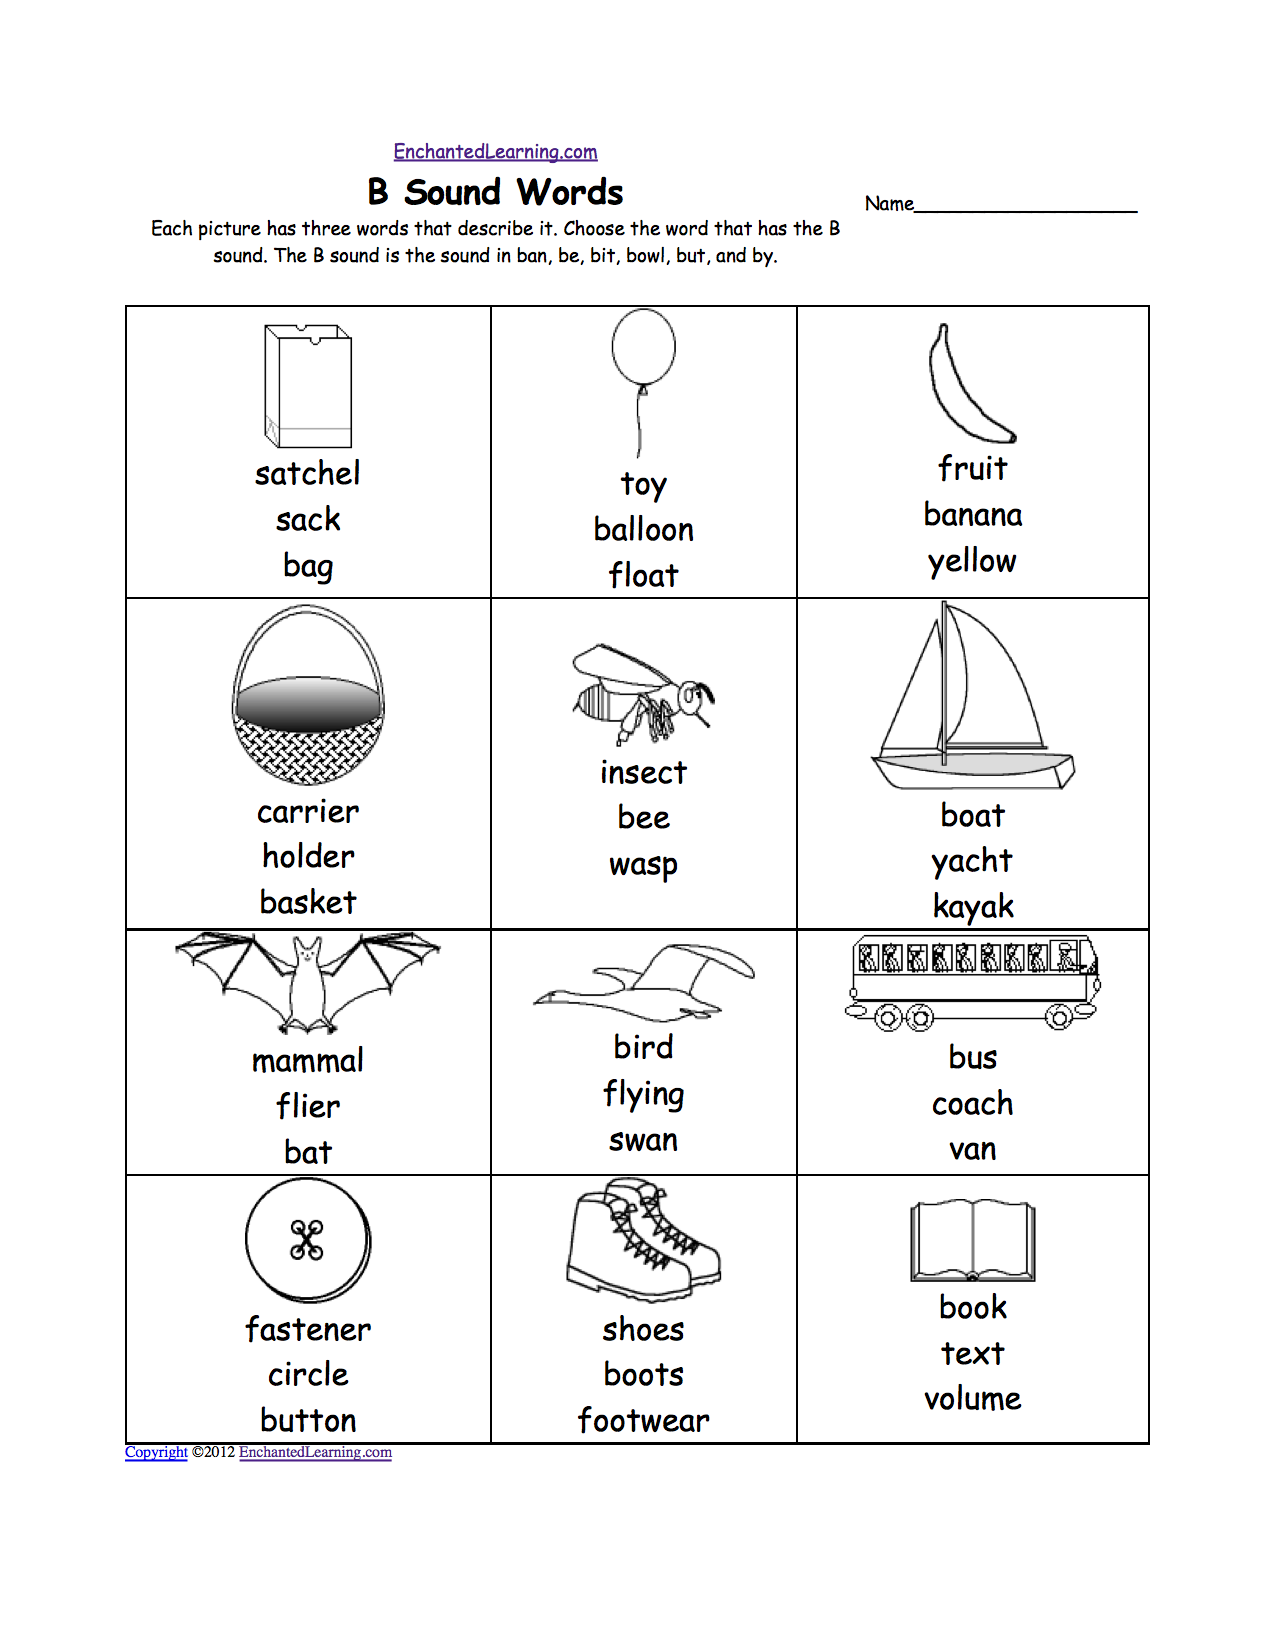 Weirdmailus  Terrific Phonics Worksheets Multiple Choice Worksheets To Print  With Goodlooking Quotbquot Sound Phonics Worksheet Multiple Choice Each Picture Has Three Words That Describe It Choose The Word That Has A Quotbquot Sound The Quotbquot Sound Is The Sound  With Astonishing Physical Science Worksheet Also Plate Boundaries Worksheet Answers In Addition Math Fact Fluency Worksheets And Magic School Bus Wet All Over Worksheet As Well As Layers Of Atmosphere Worksheet Additionally Possessive Pronoun Worksheet From Enchantedlearningcom With Weirdmailus  Goodlooking Phonics Worksheets Multiple Choice Worksheets To Print  With Astonishing Quotbquot Sound Phonics Worksheet Multiple Choice Each Picture Has Three Words That Describe It Choose The Word That Has A Quotbquot Sound The Quotbquot Sound Is The Sound  And Terrific Physical Science Worksheet Also Plate Boundaries Worksheet Answers In Addition Math Fact Fluency Worksheets From Enchantedlearningcom